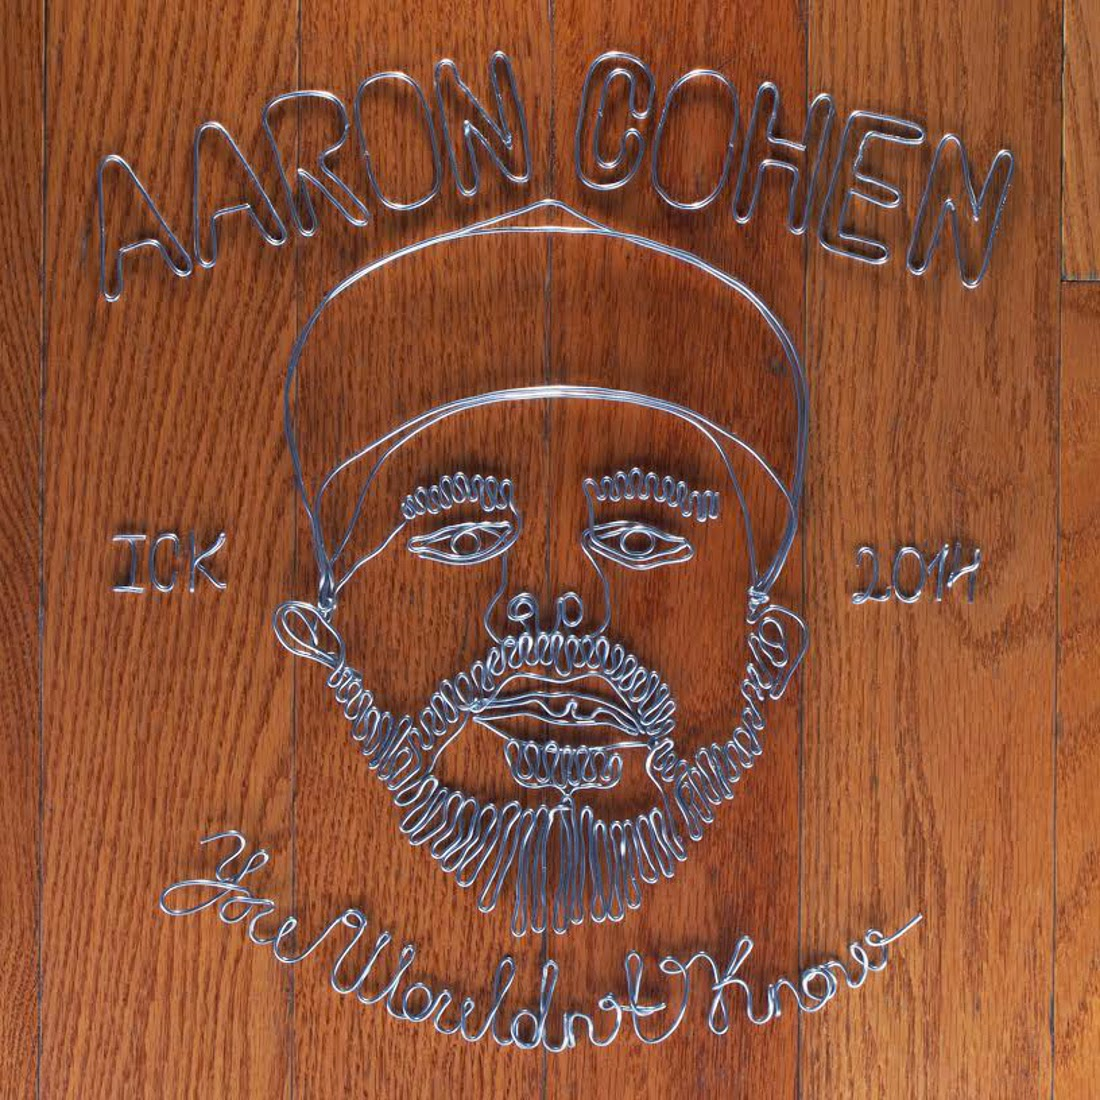 http://www.d4am.net/2014/10/aaron-cohen-you-wouldnt-know-free.html